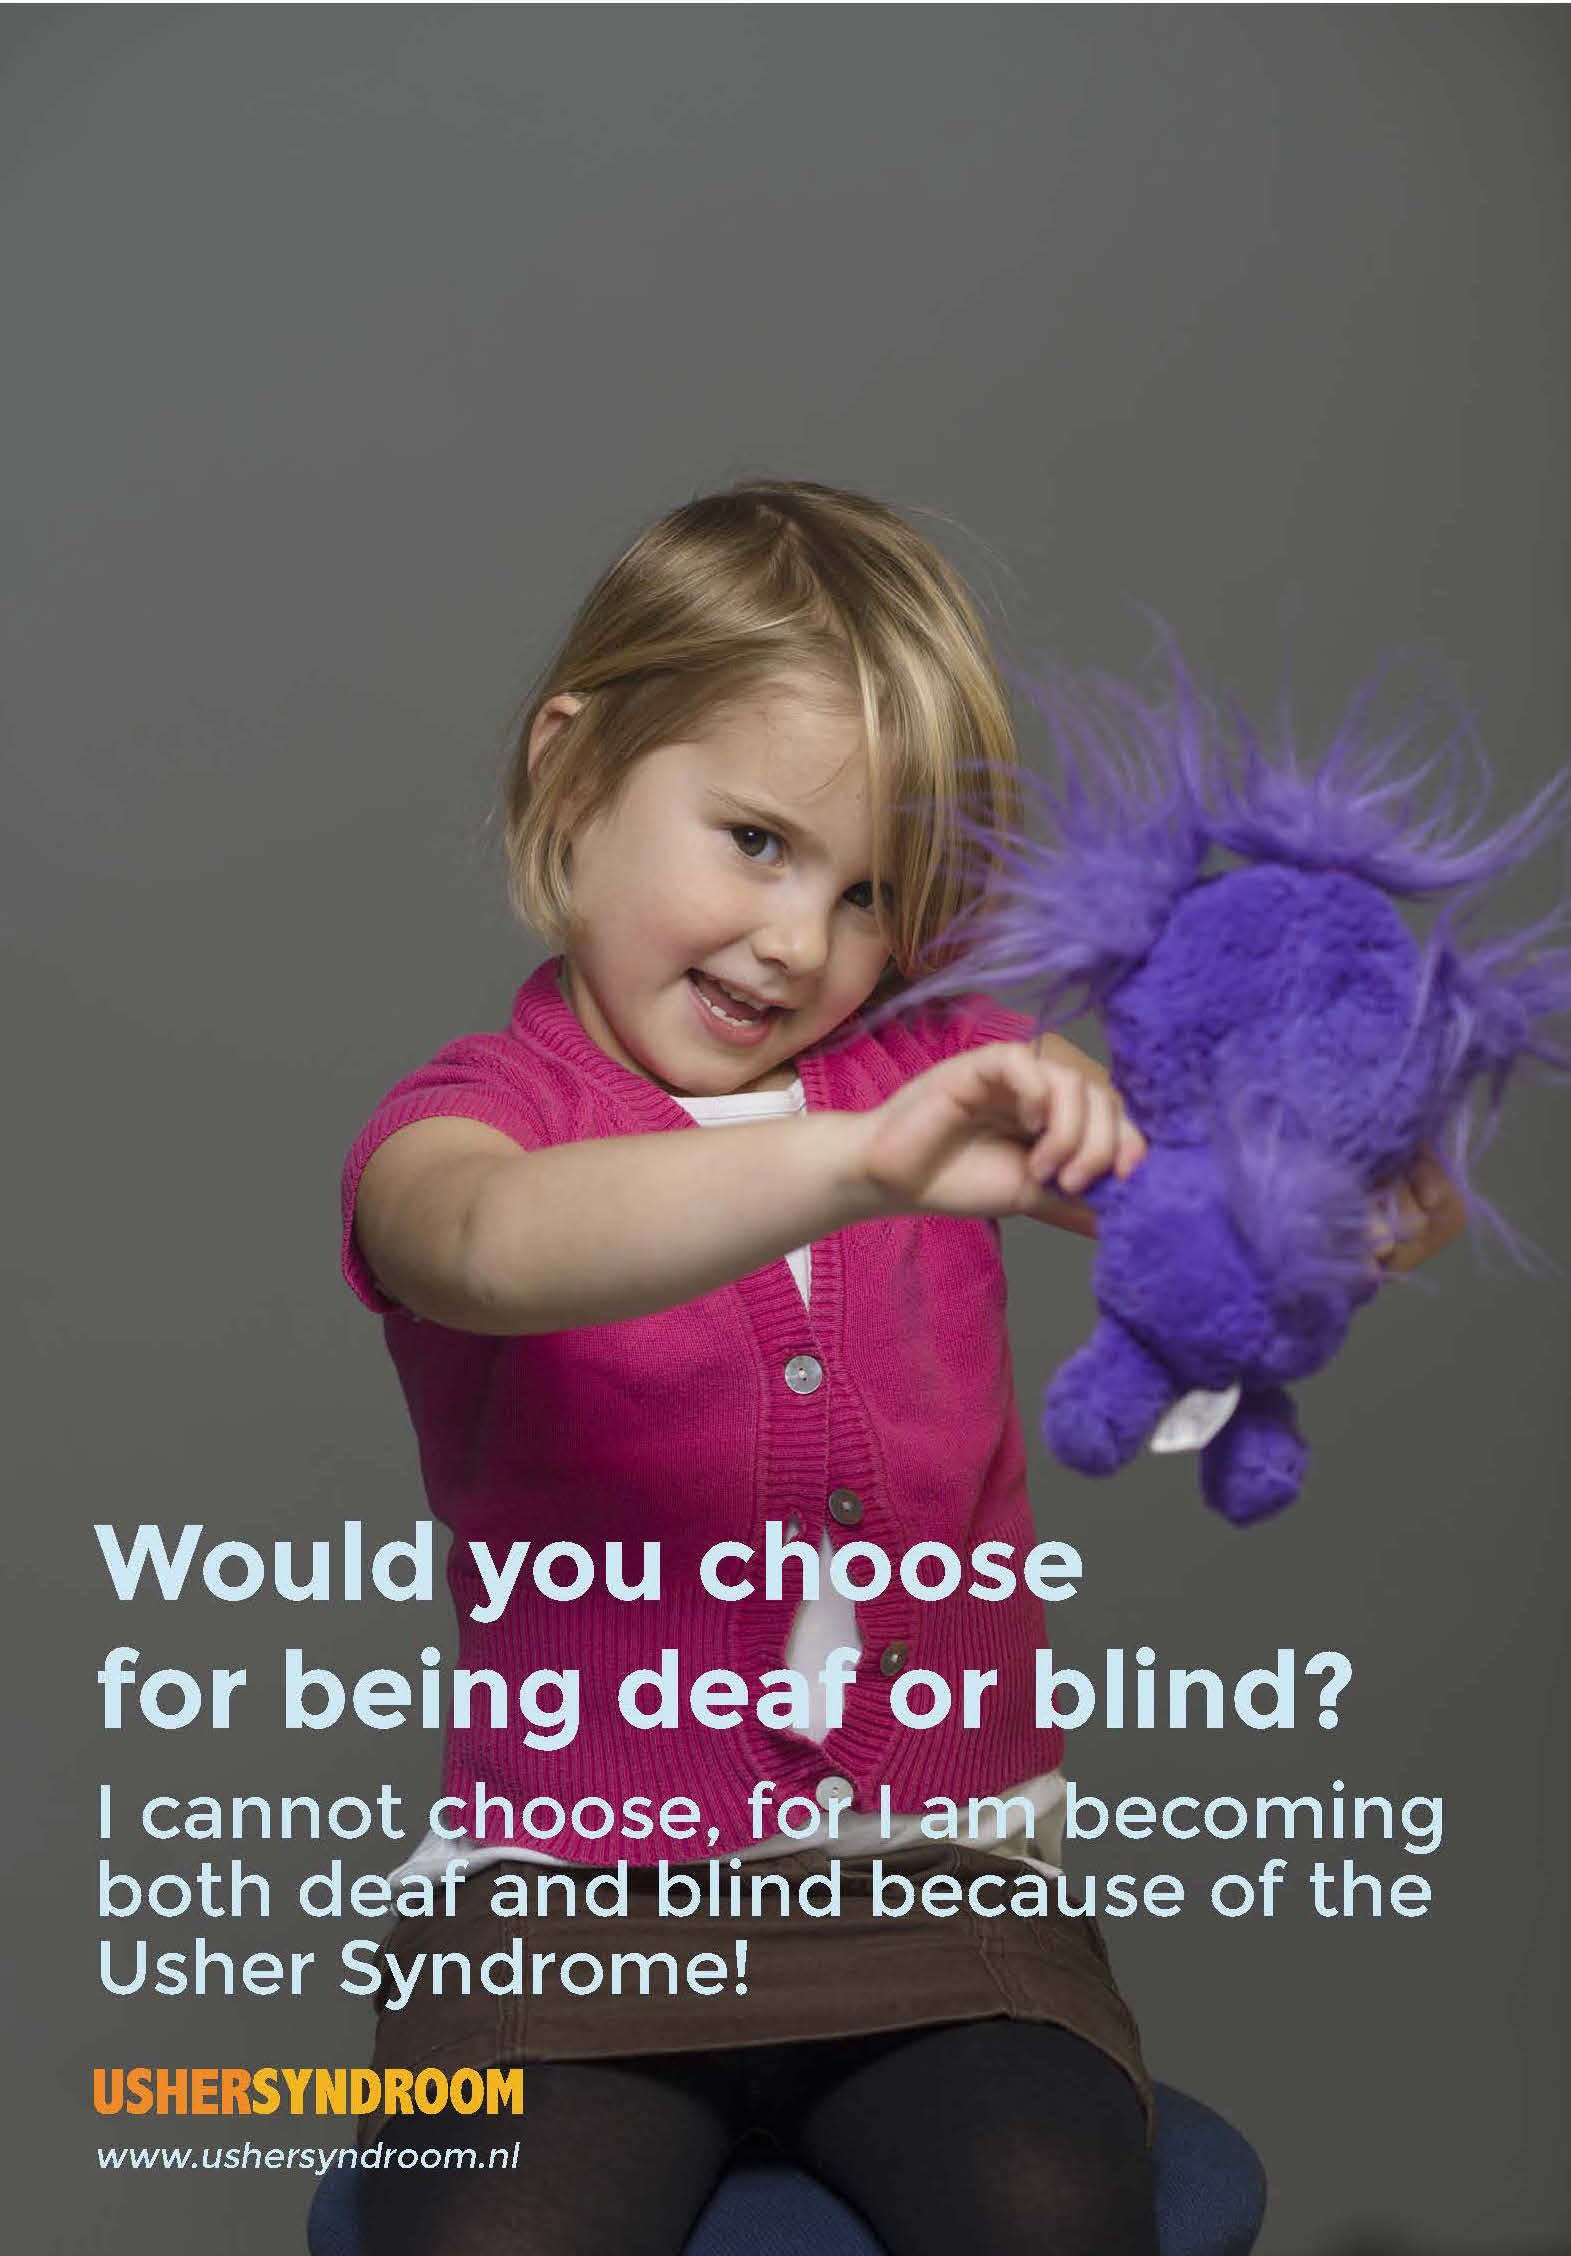 Poster campaign 'Would you choose for beeing deaf or blind?'